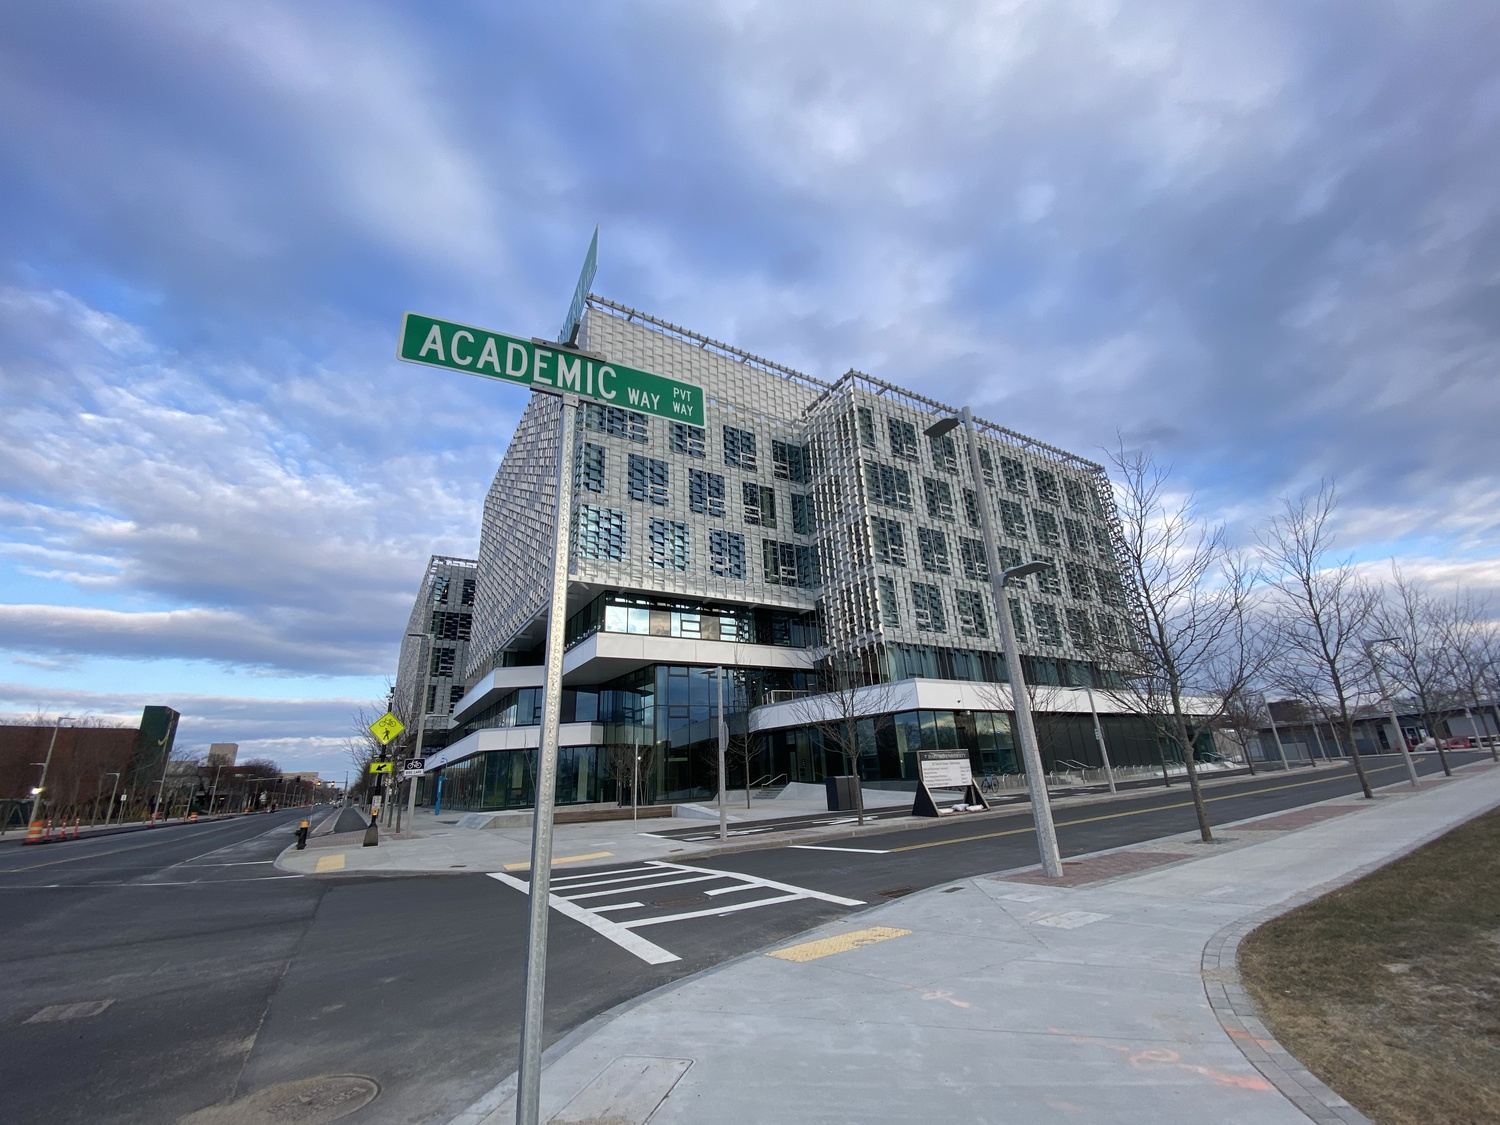 Harvard's new Science and Engineering Complex is located at 150 Western Avenue in Allston. Harvard affiliates started moving into the building in November 2020.